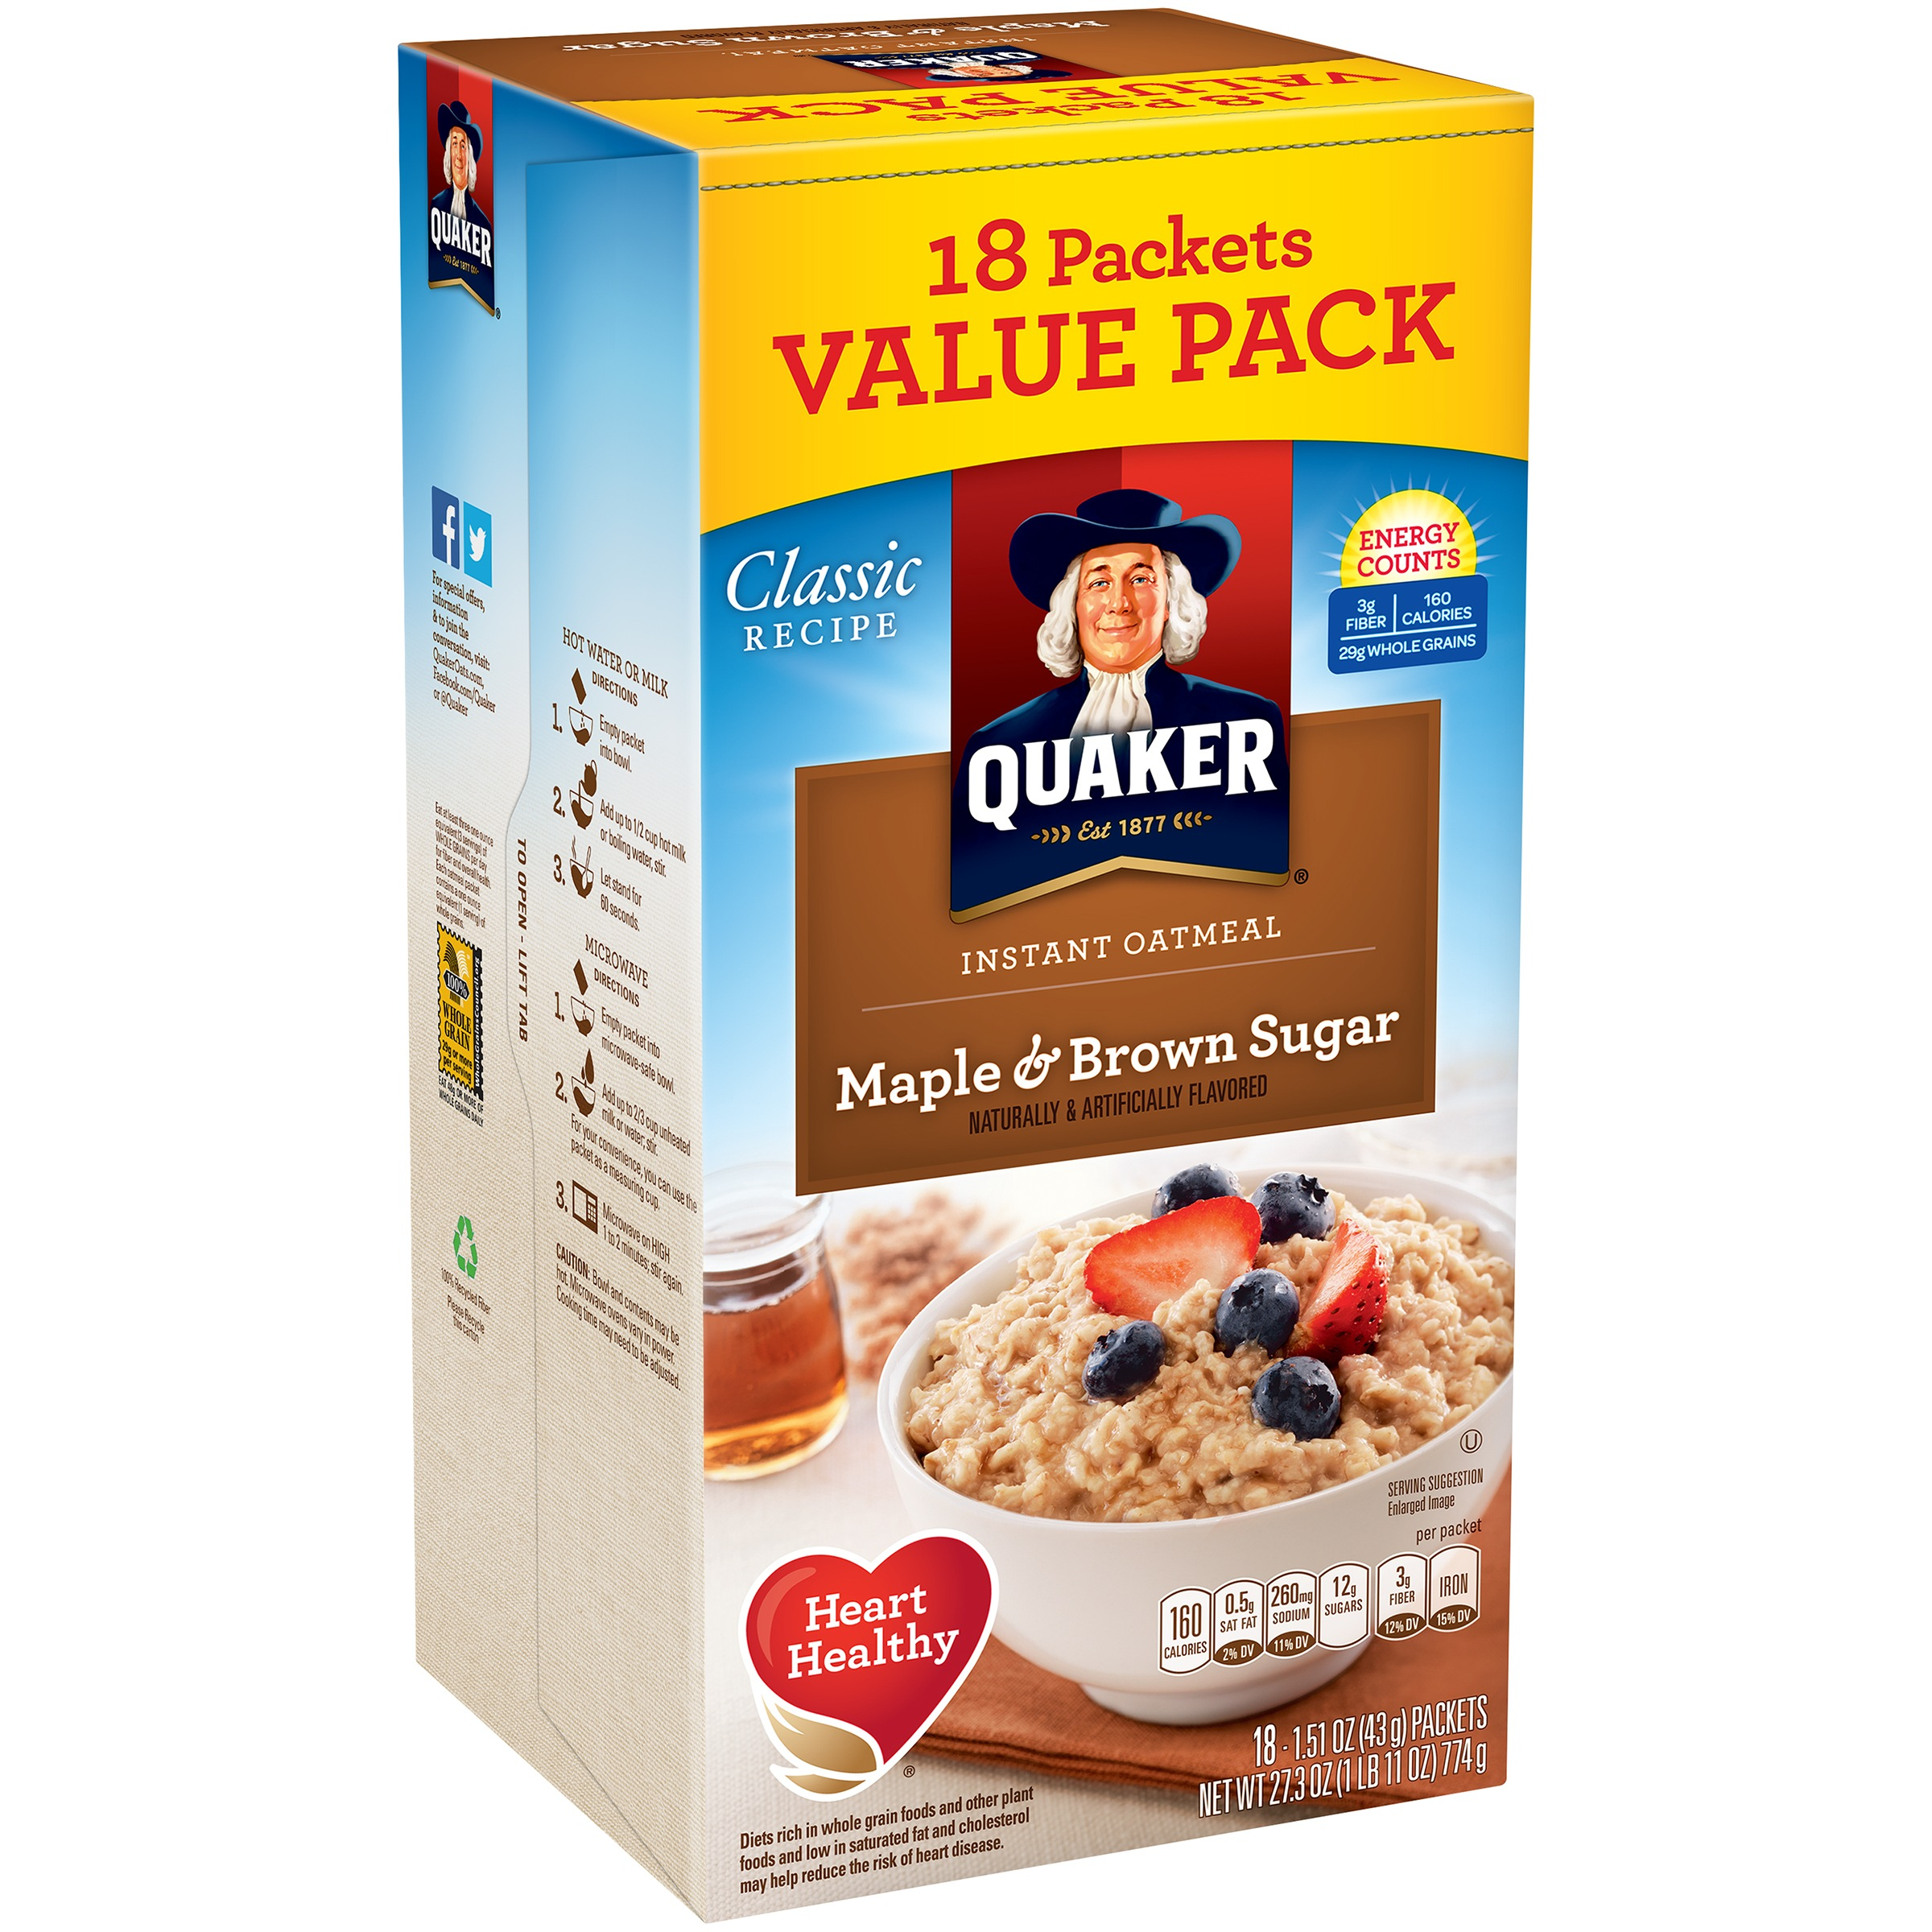 Quaker Instant Oatmeal, Maple & Brown Sugar, 18 Packets